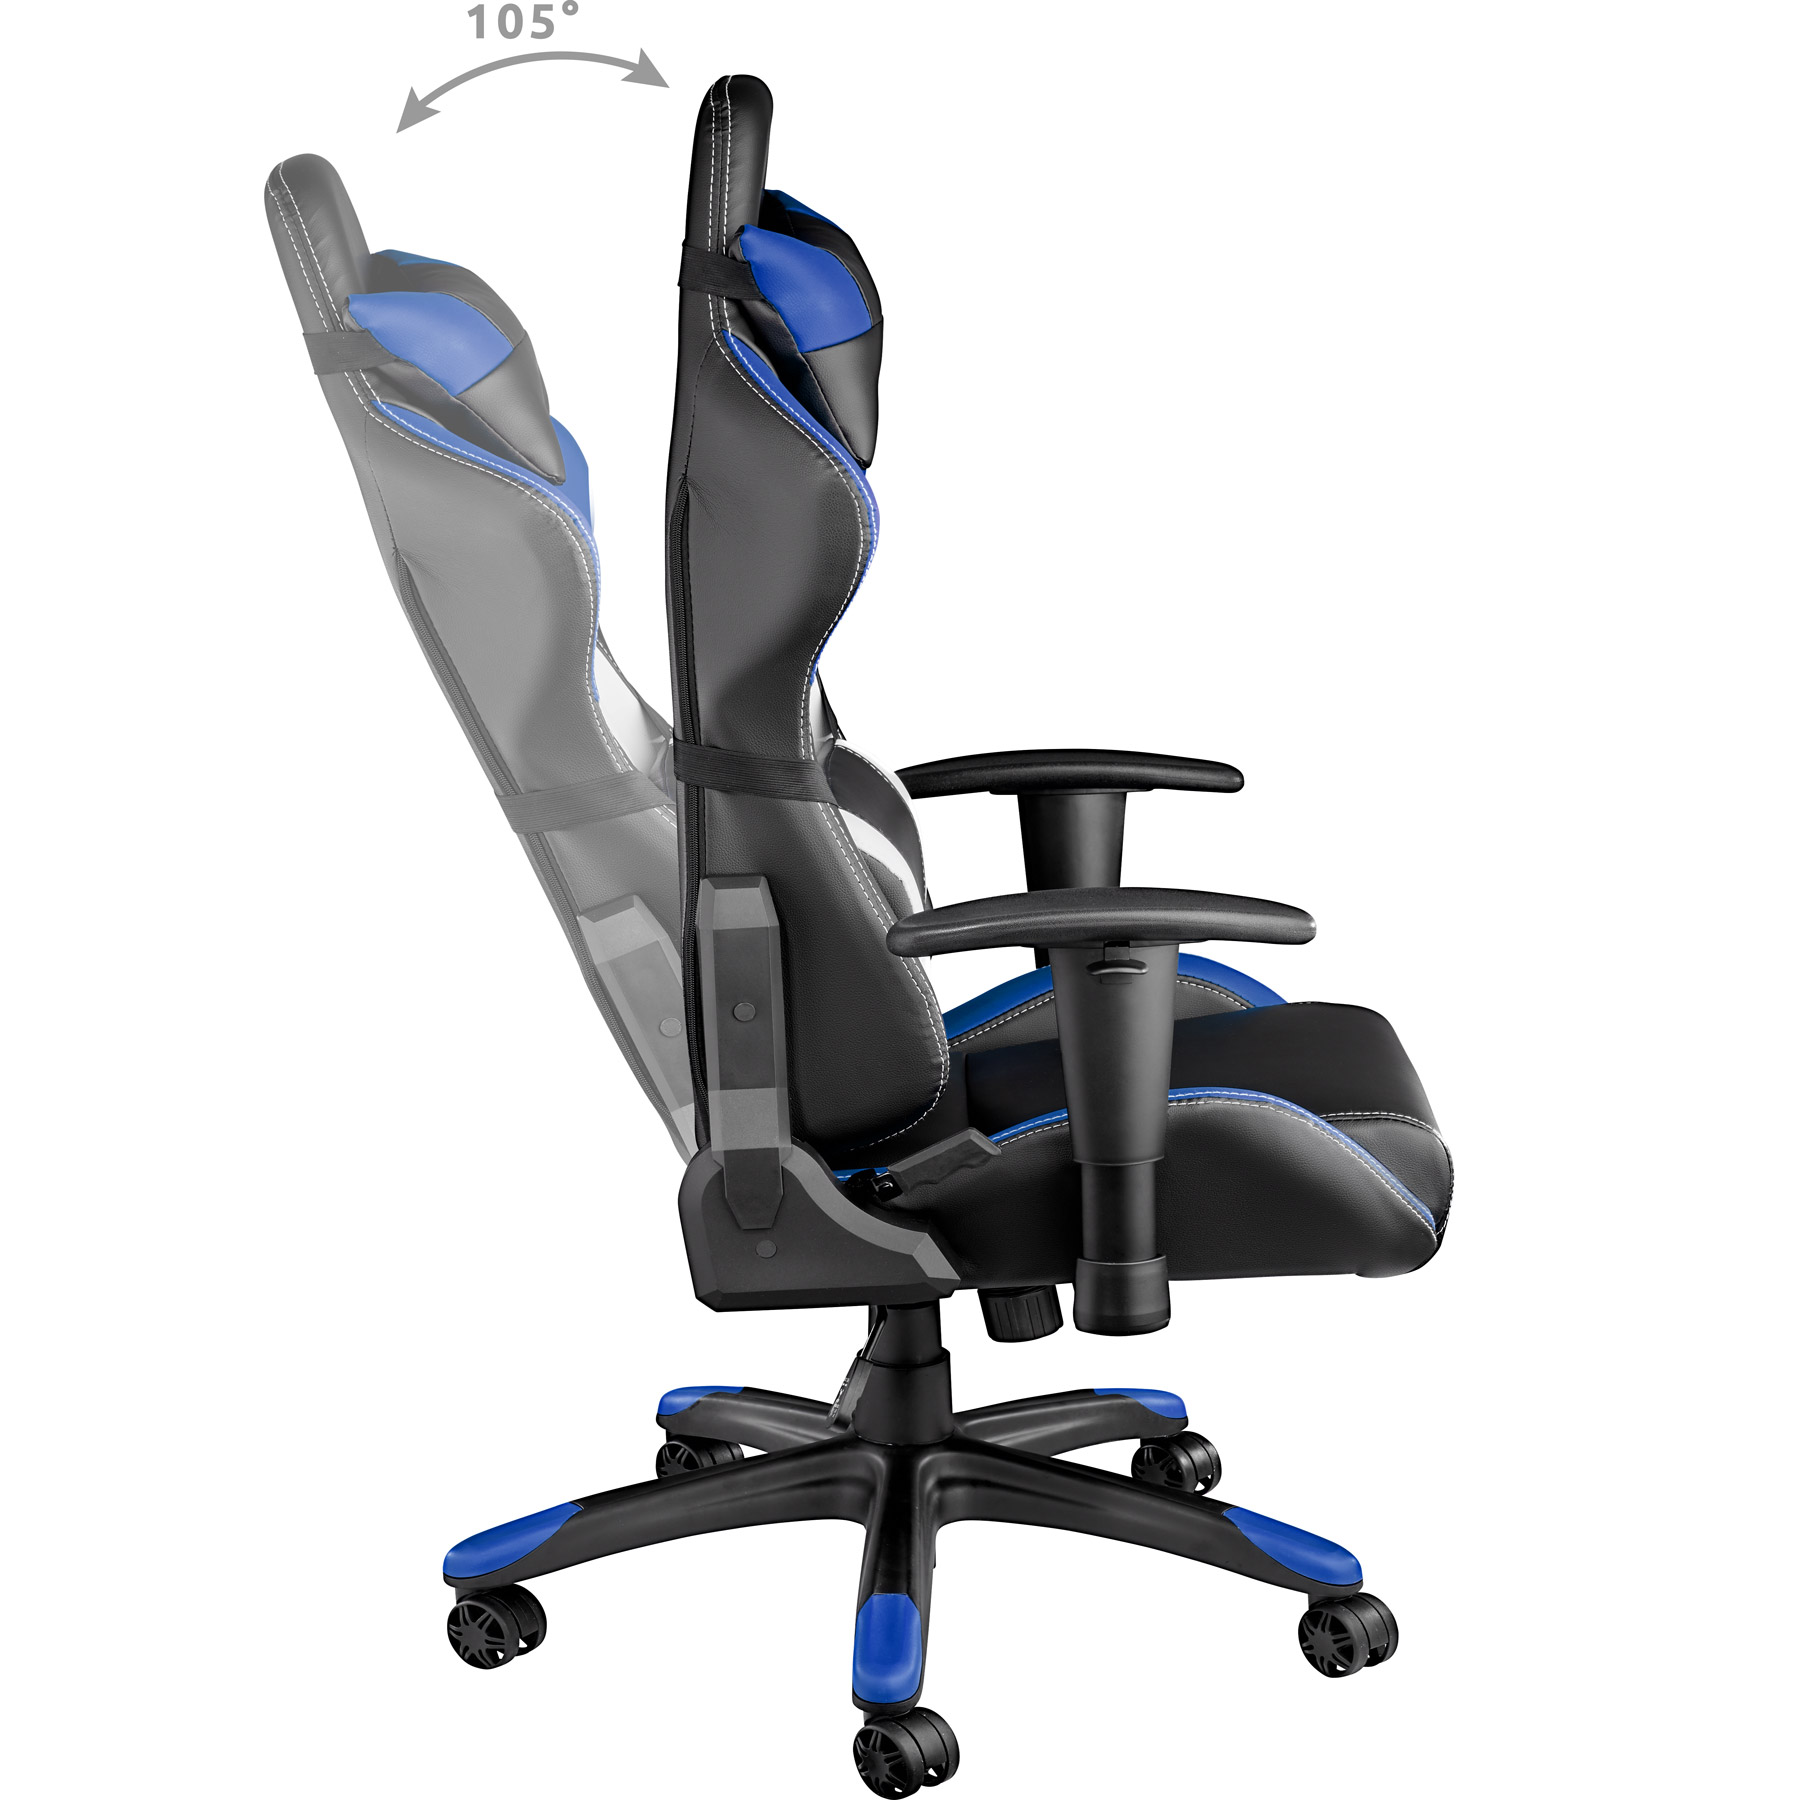 racing chaise fauteuil de bureau sportive siege voiture r glable imitation cuir ebay. Black Bedroom Furniture Sets. Home Design Ideas